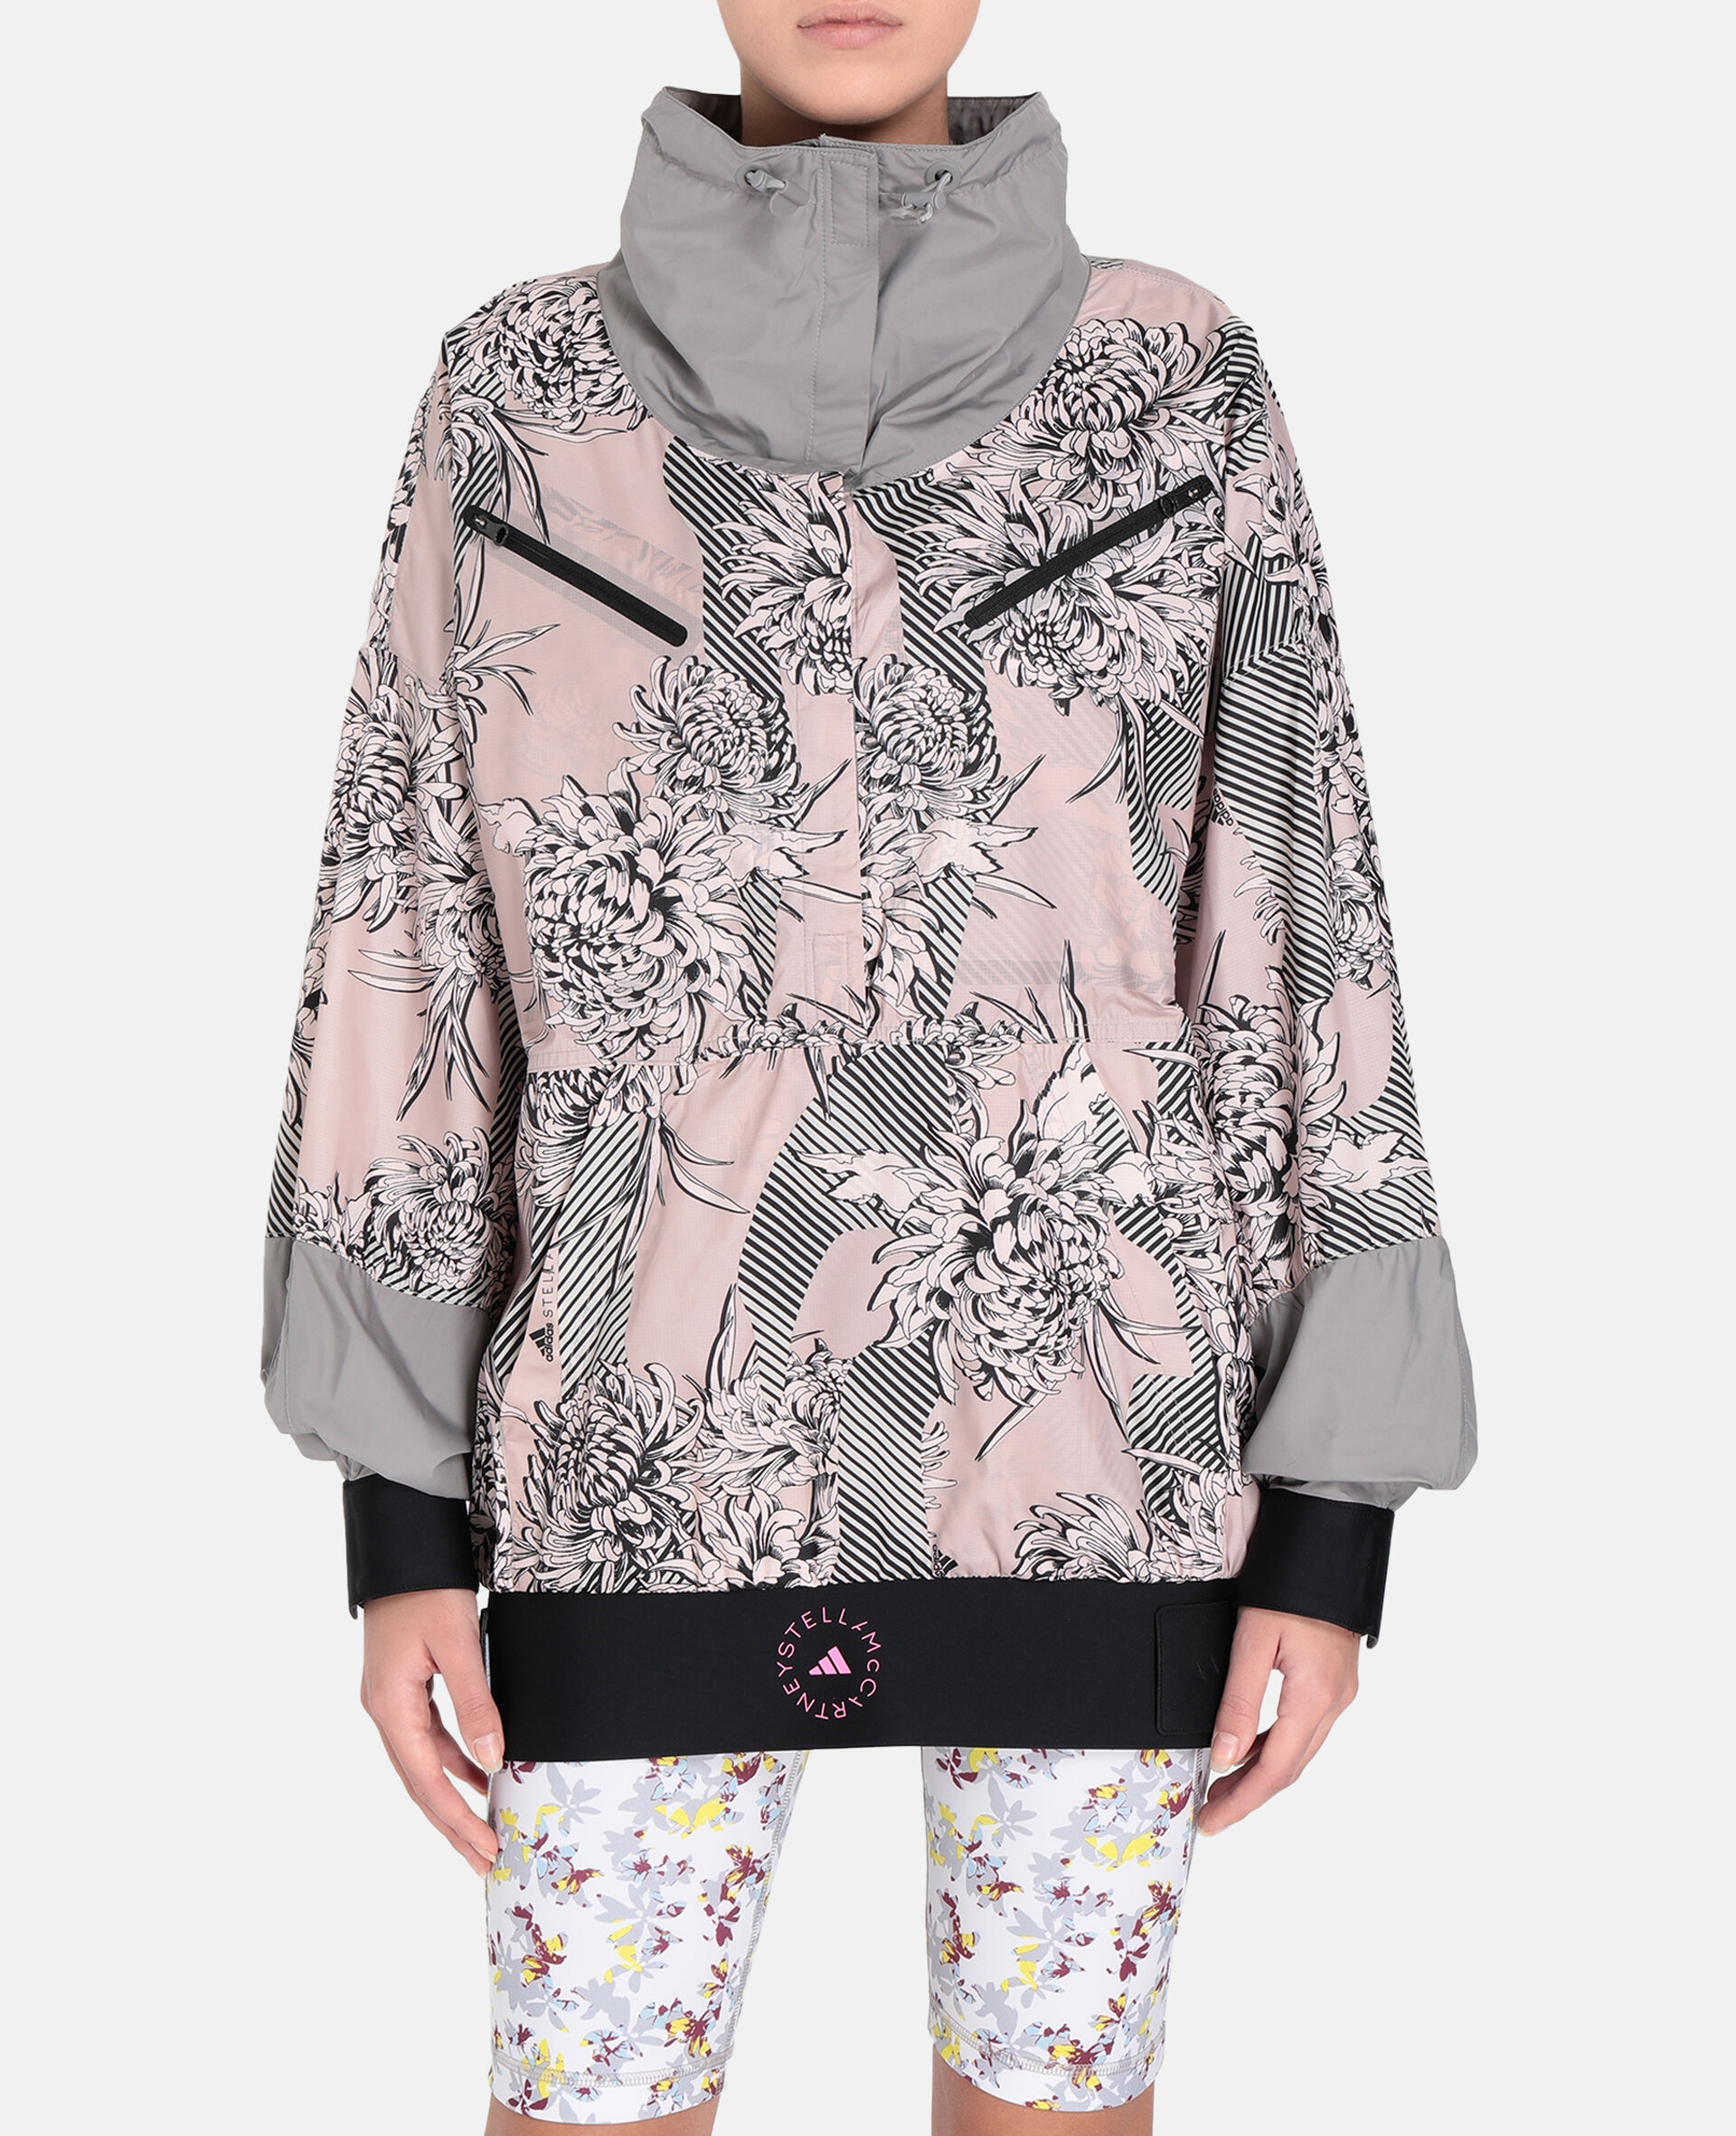 Future Playground Half-Zip Jacket -Pink-large image number 4